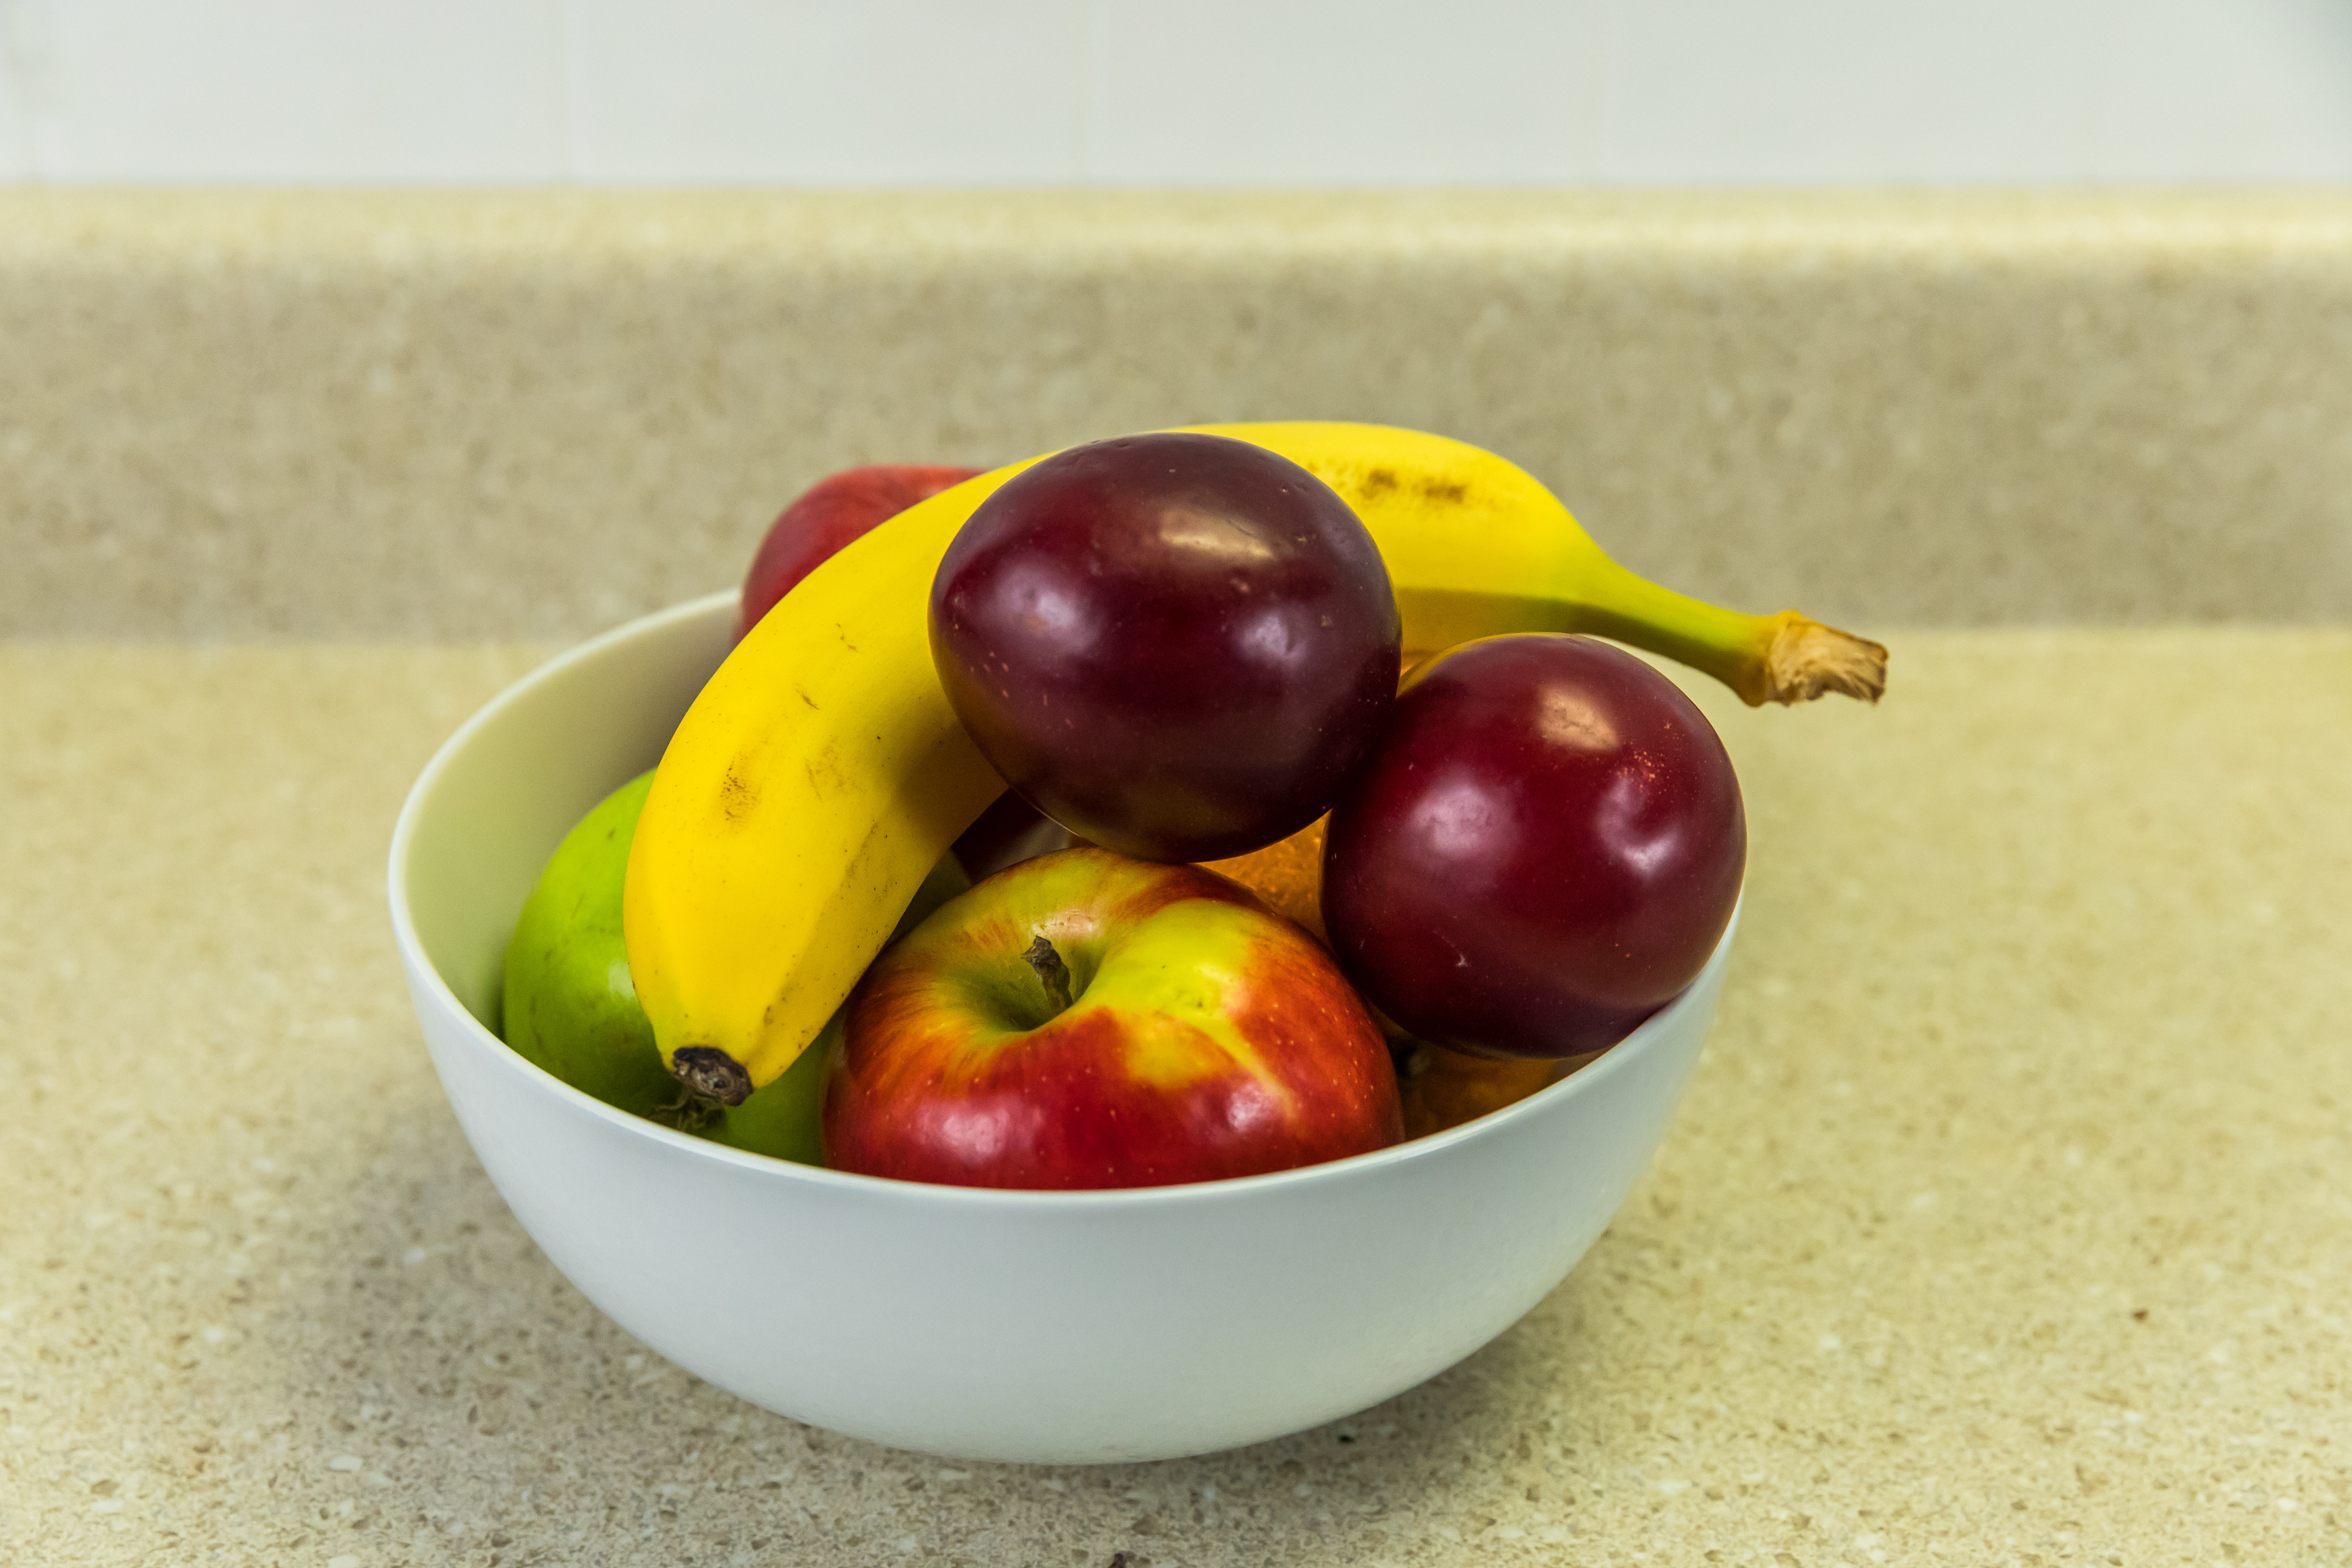 Banana and apples in a white bowl on a counter.